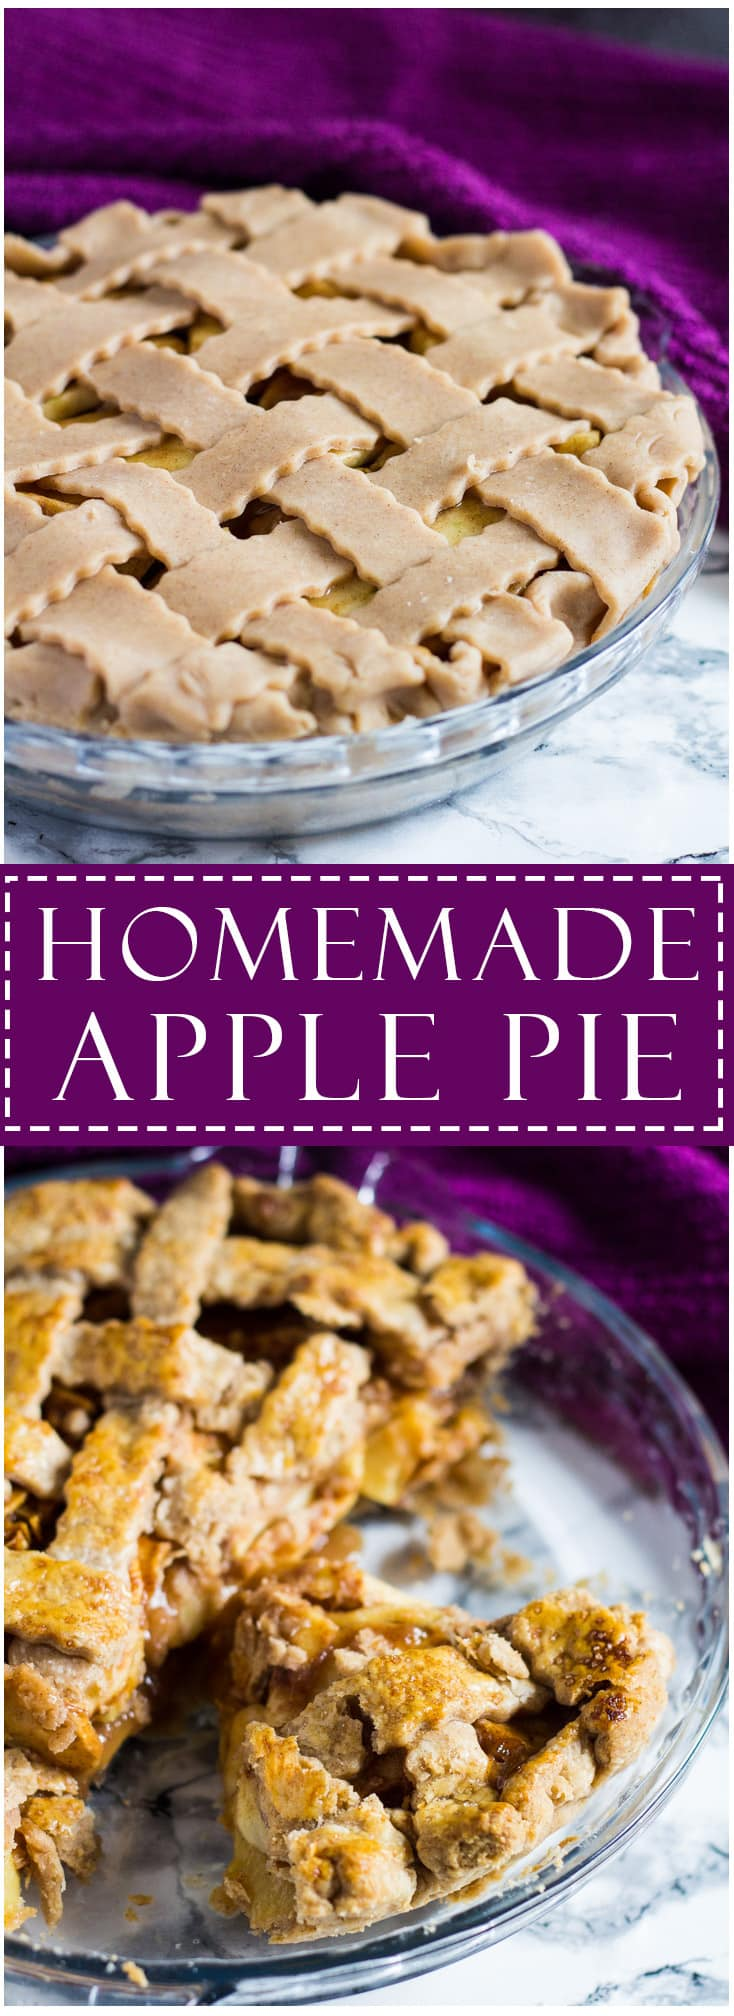 Homemade Apple Pie – Deliciously warm and sweet homemade apple pie. A traditional, comforting autumn recipe favourite!